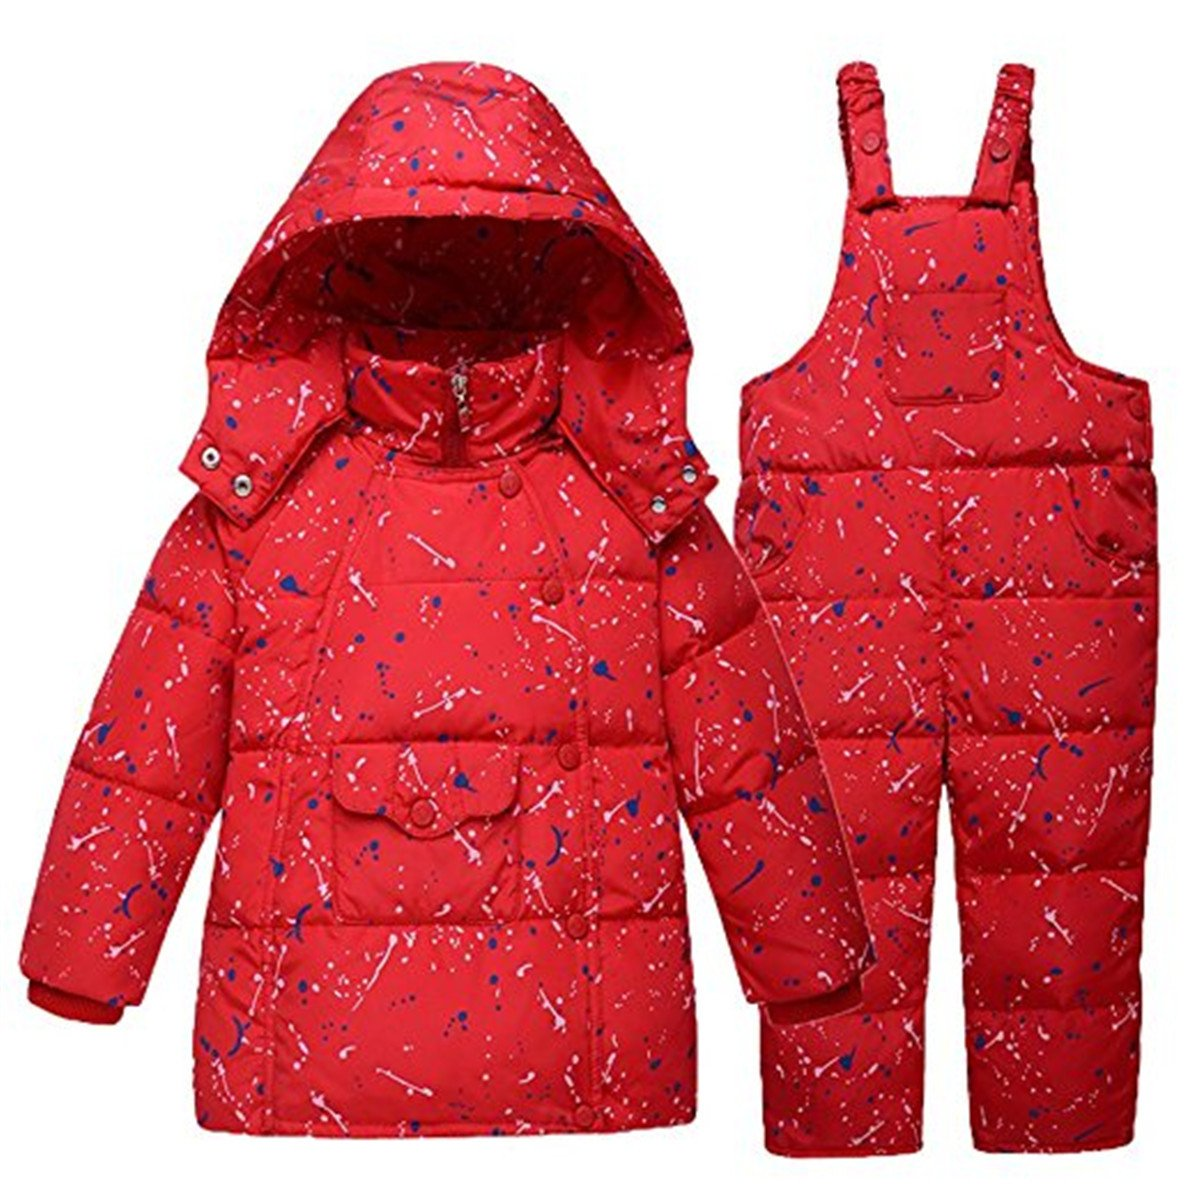 Little Unisex Baby Two Piece Winter Warm Snowsuit Puffer Down Jacket With Snow Ski Bib Pants Outfits